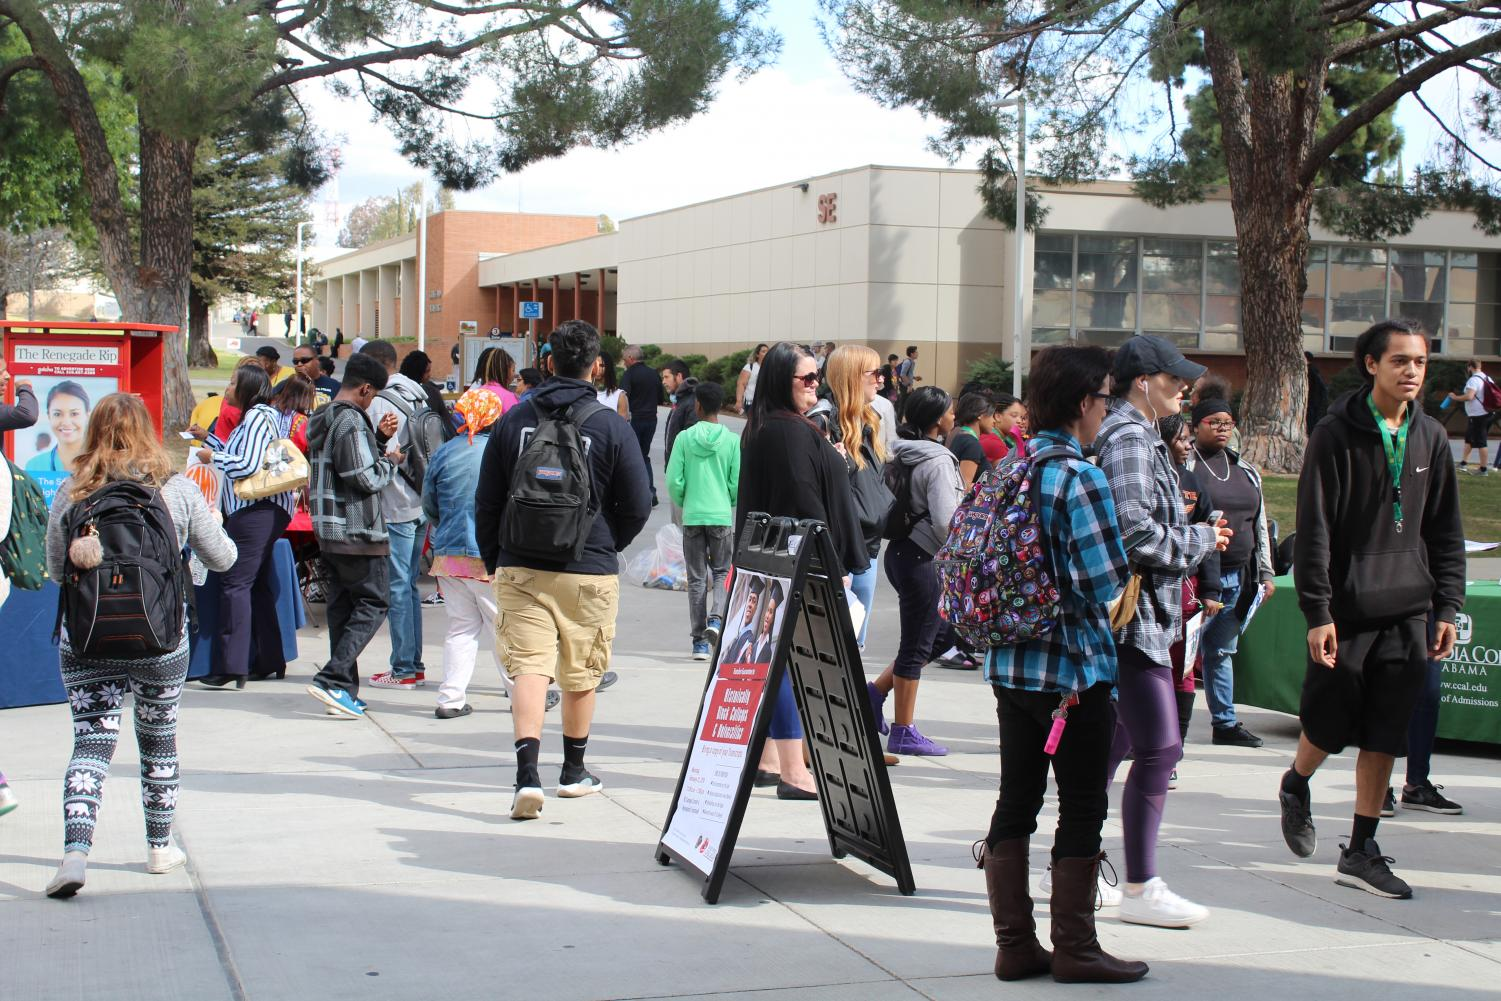 Bakersfield College students gathering around at the quad for the HBCU event.